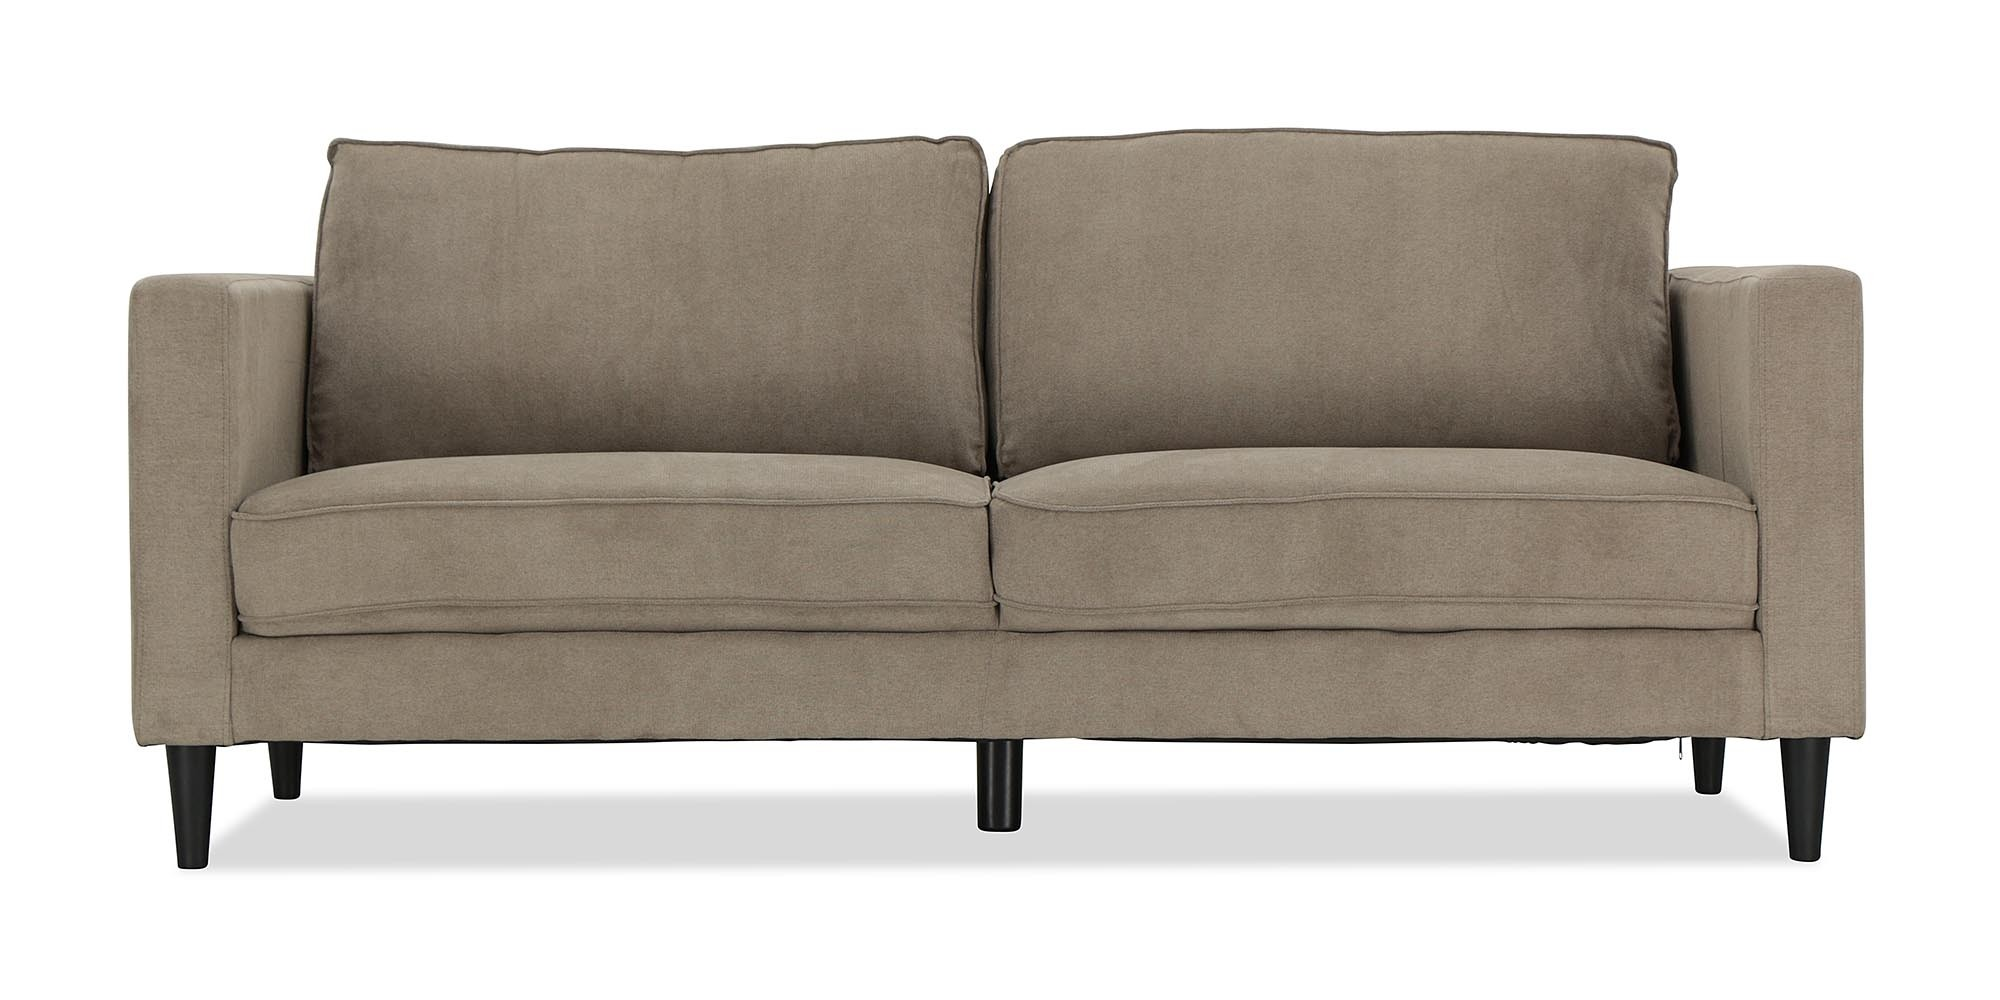 Sofa Taupe Fabian 3 Seater Sofa Taupe Furniture And Home Décor